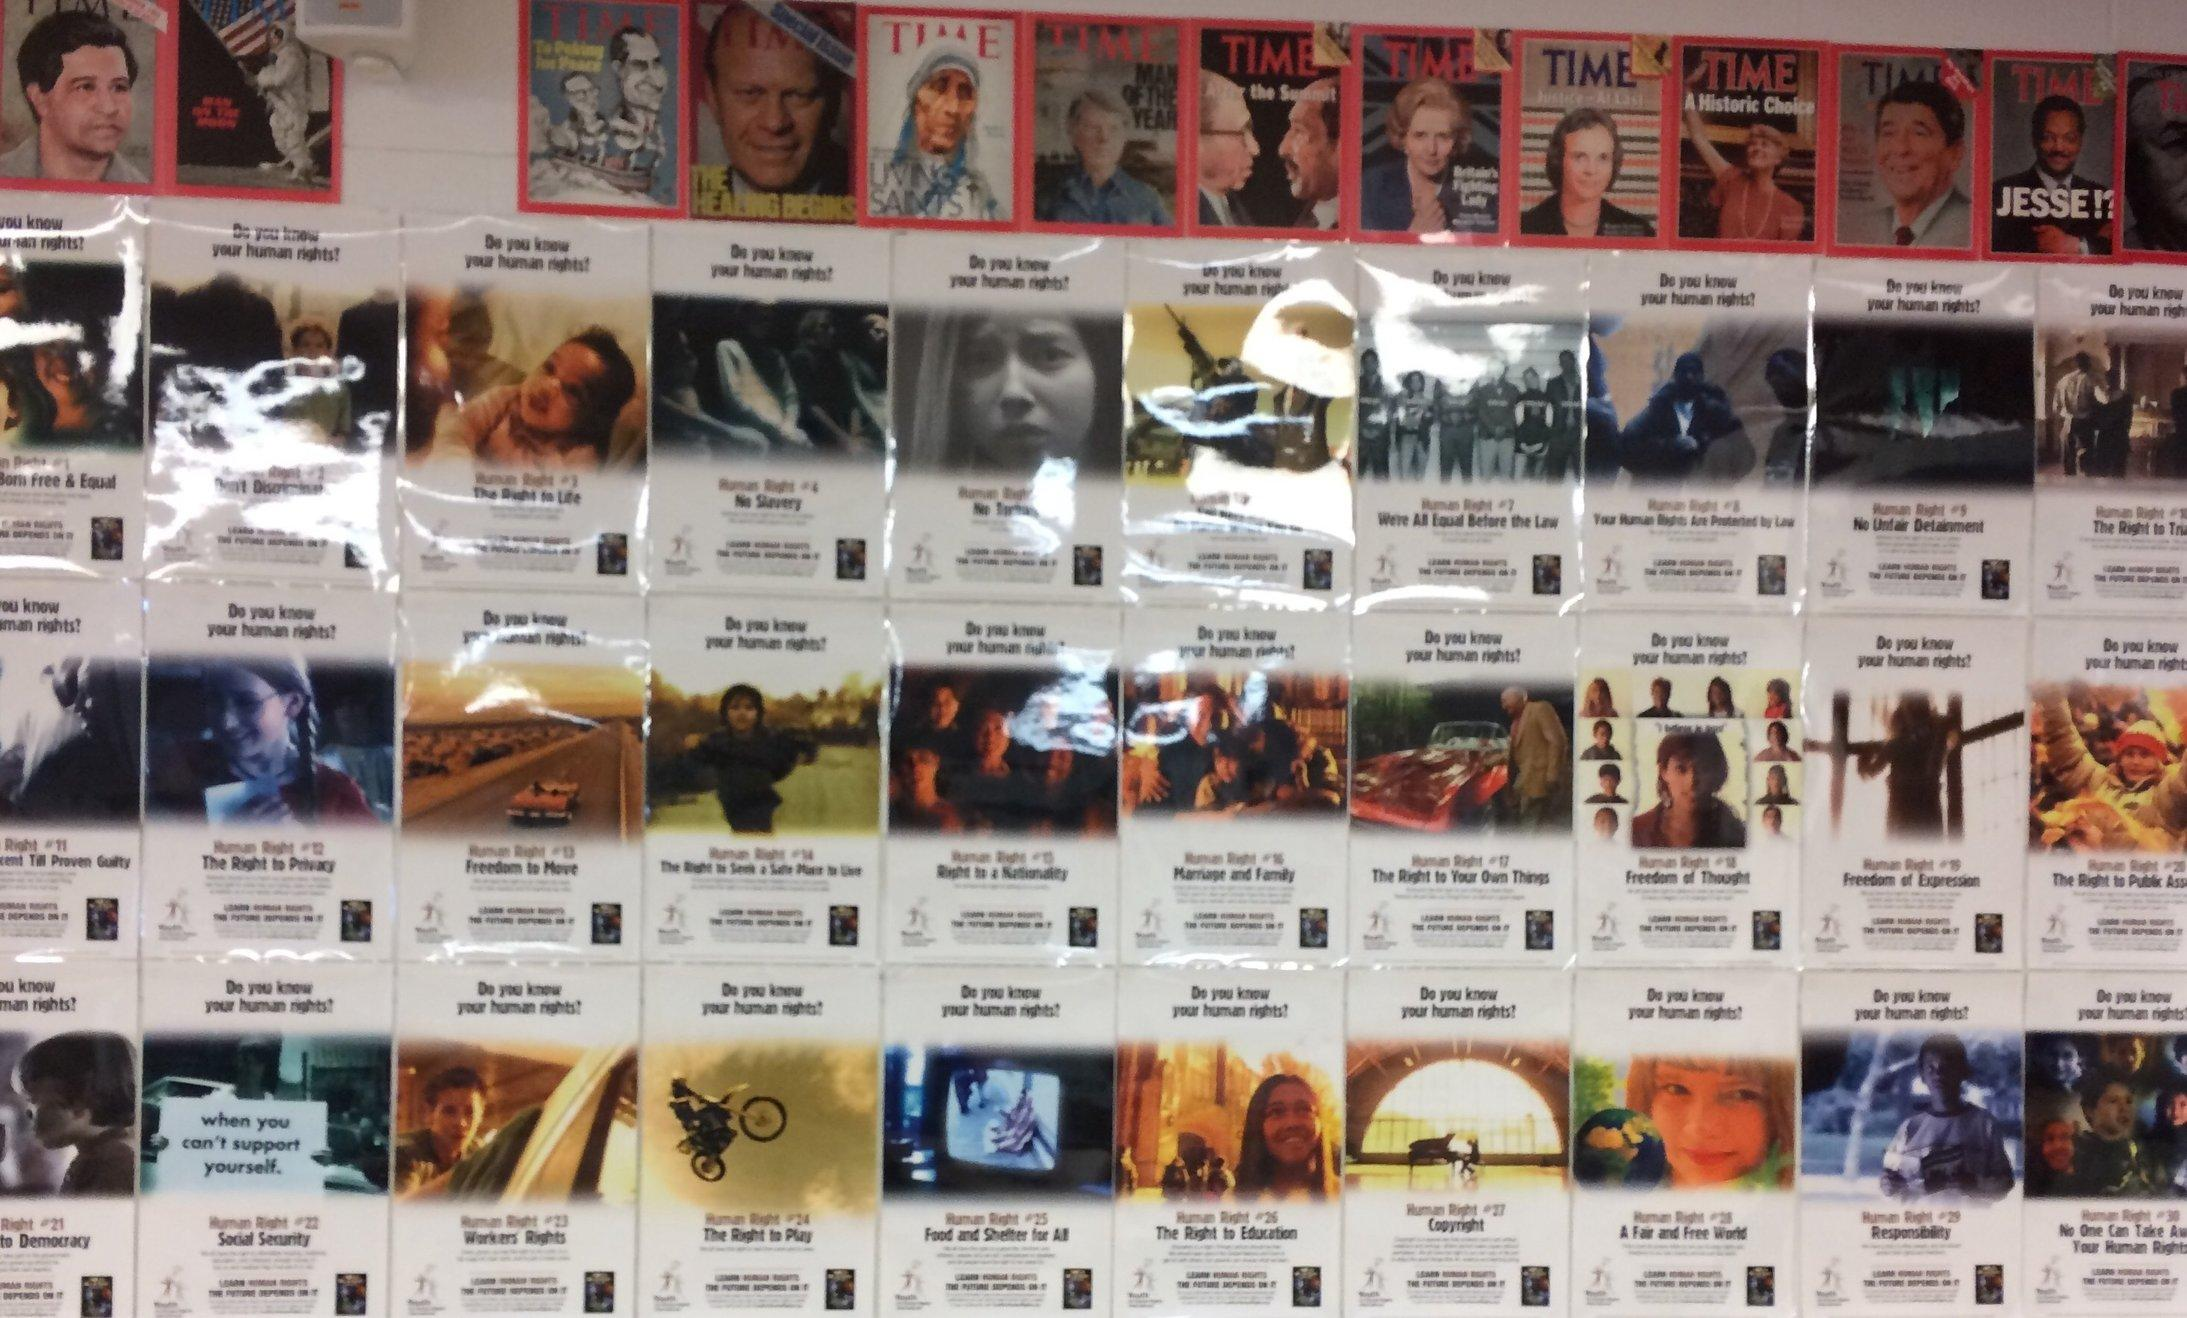 A wall of Human Rights in Mr. Prangen's room.